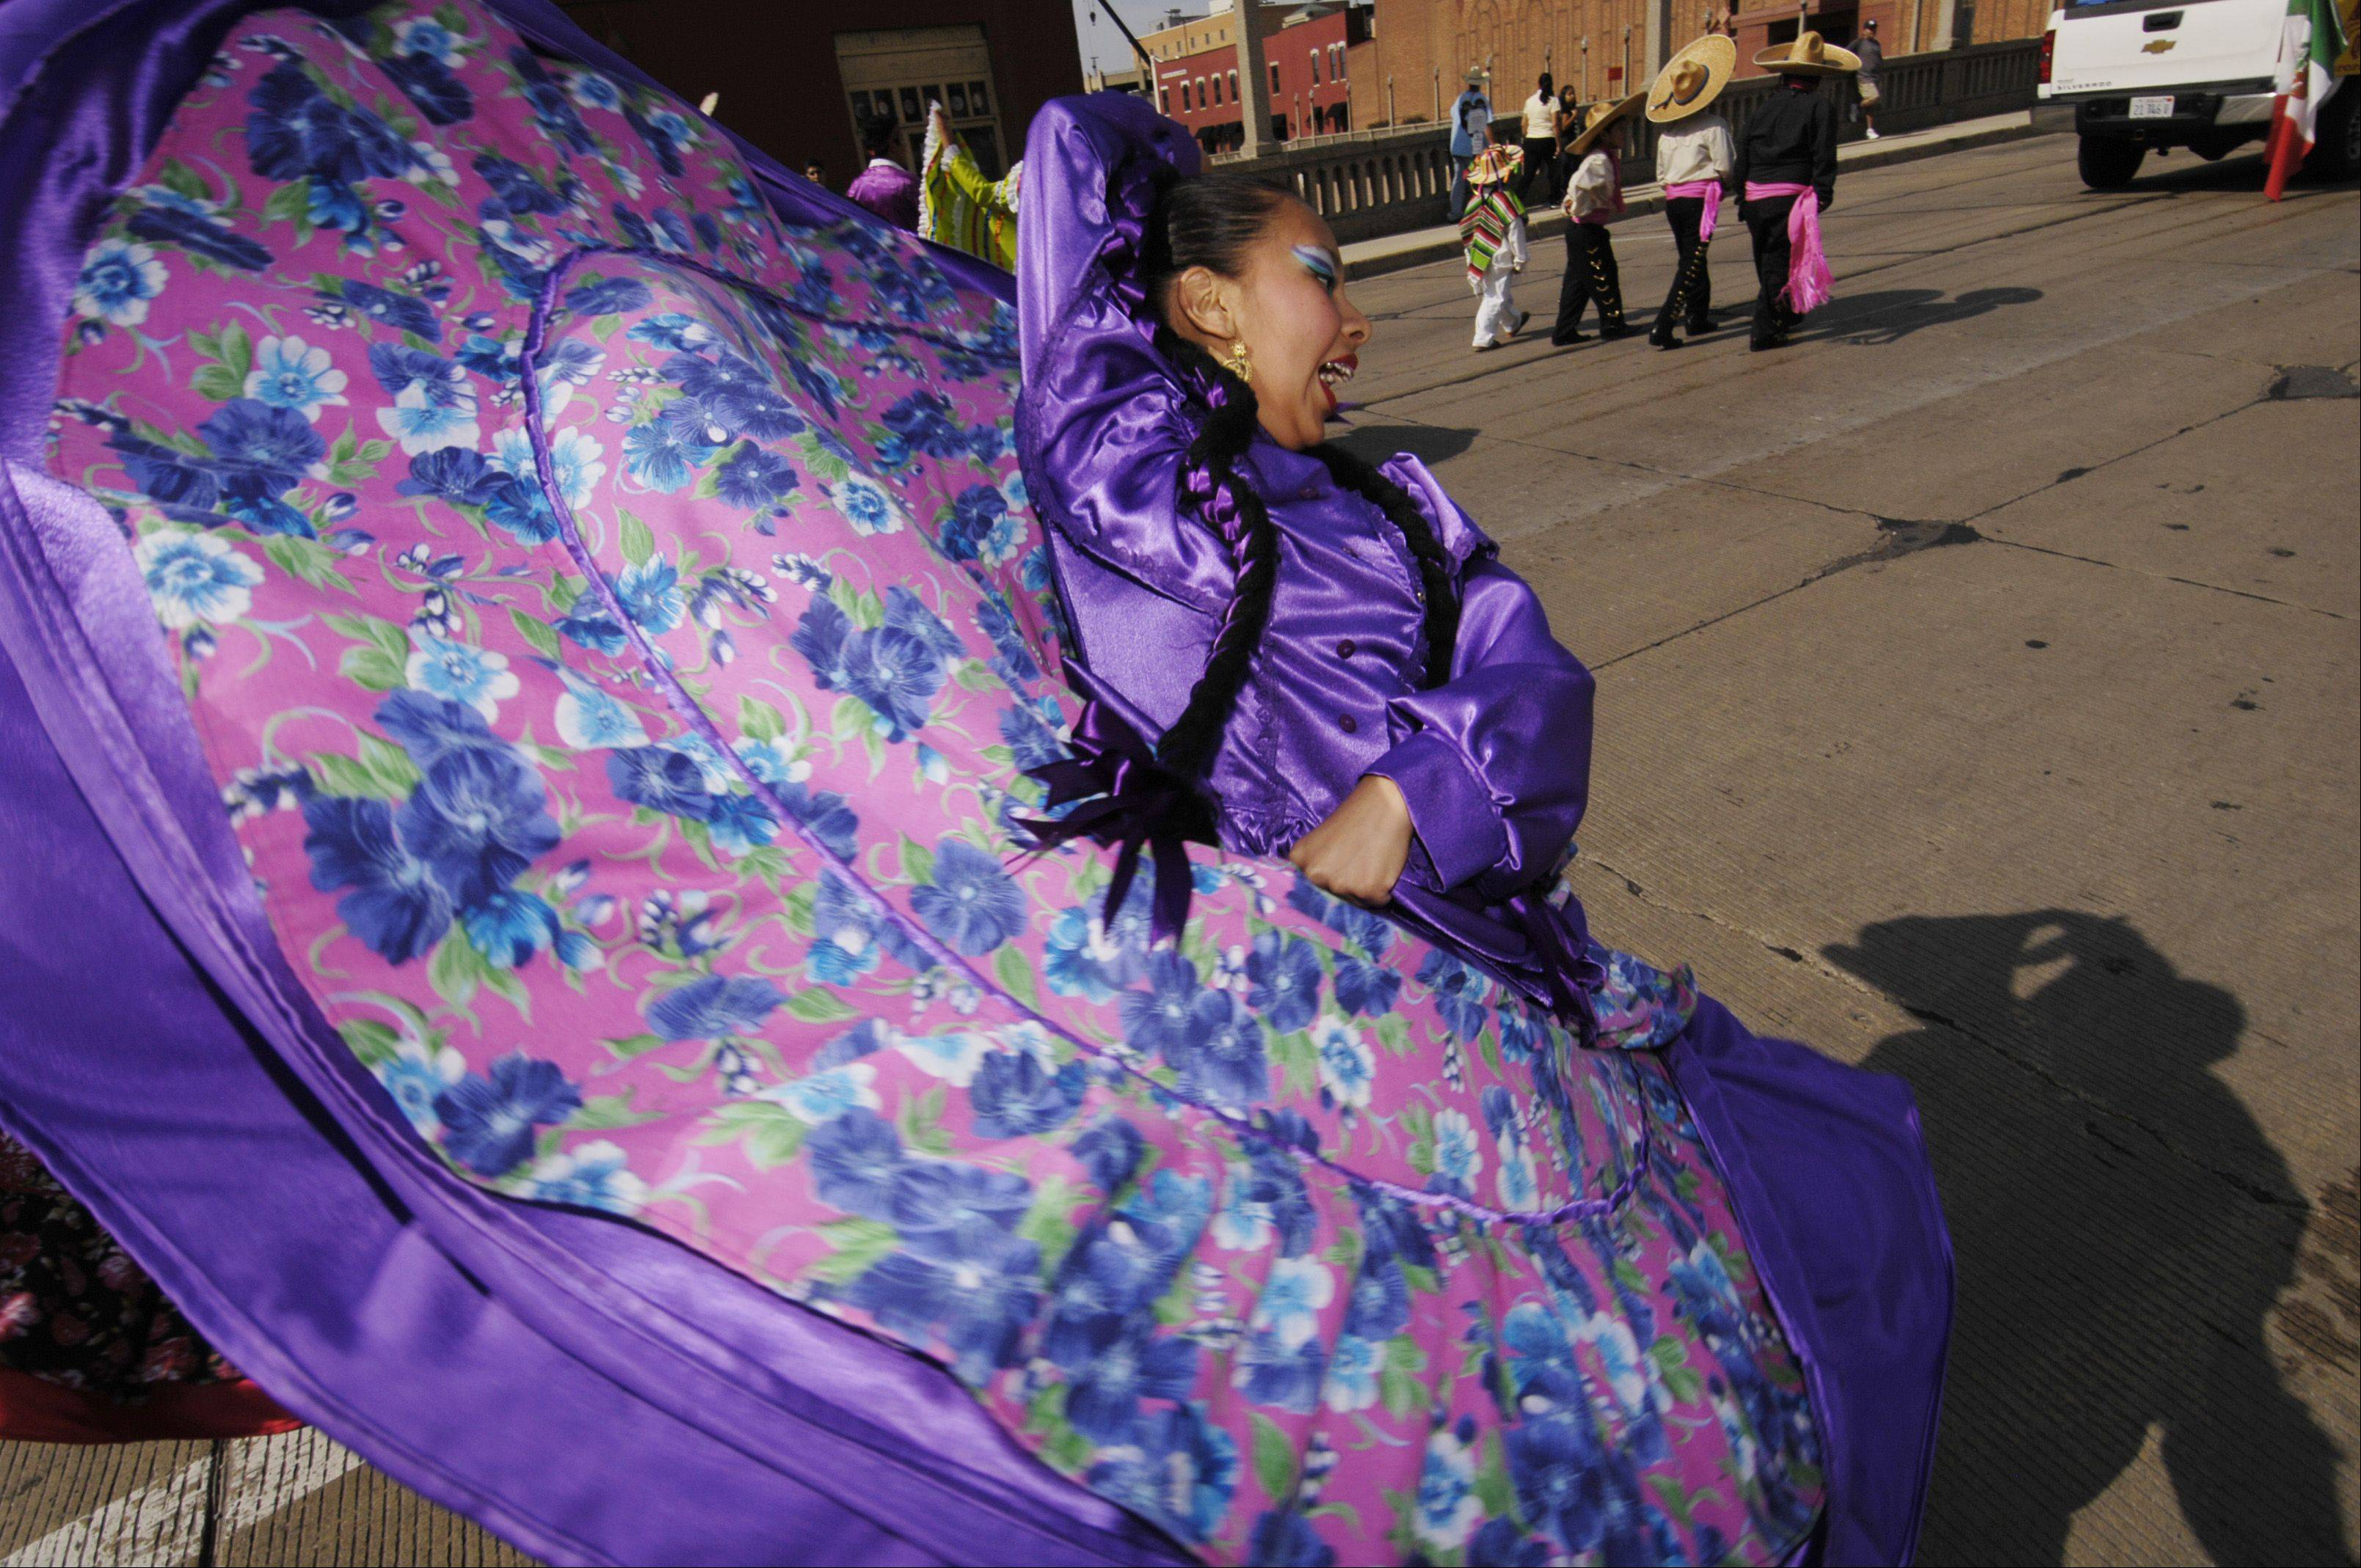 Ballet Folklorico Quetzalcoatl performs Sunday during the third annual Fiestas Patrias in celebration of Mexican independence in Aurora. The three-day festival celebrates the region�s diversity.